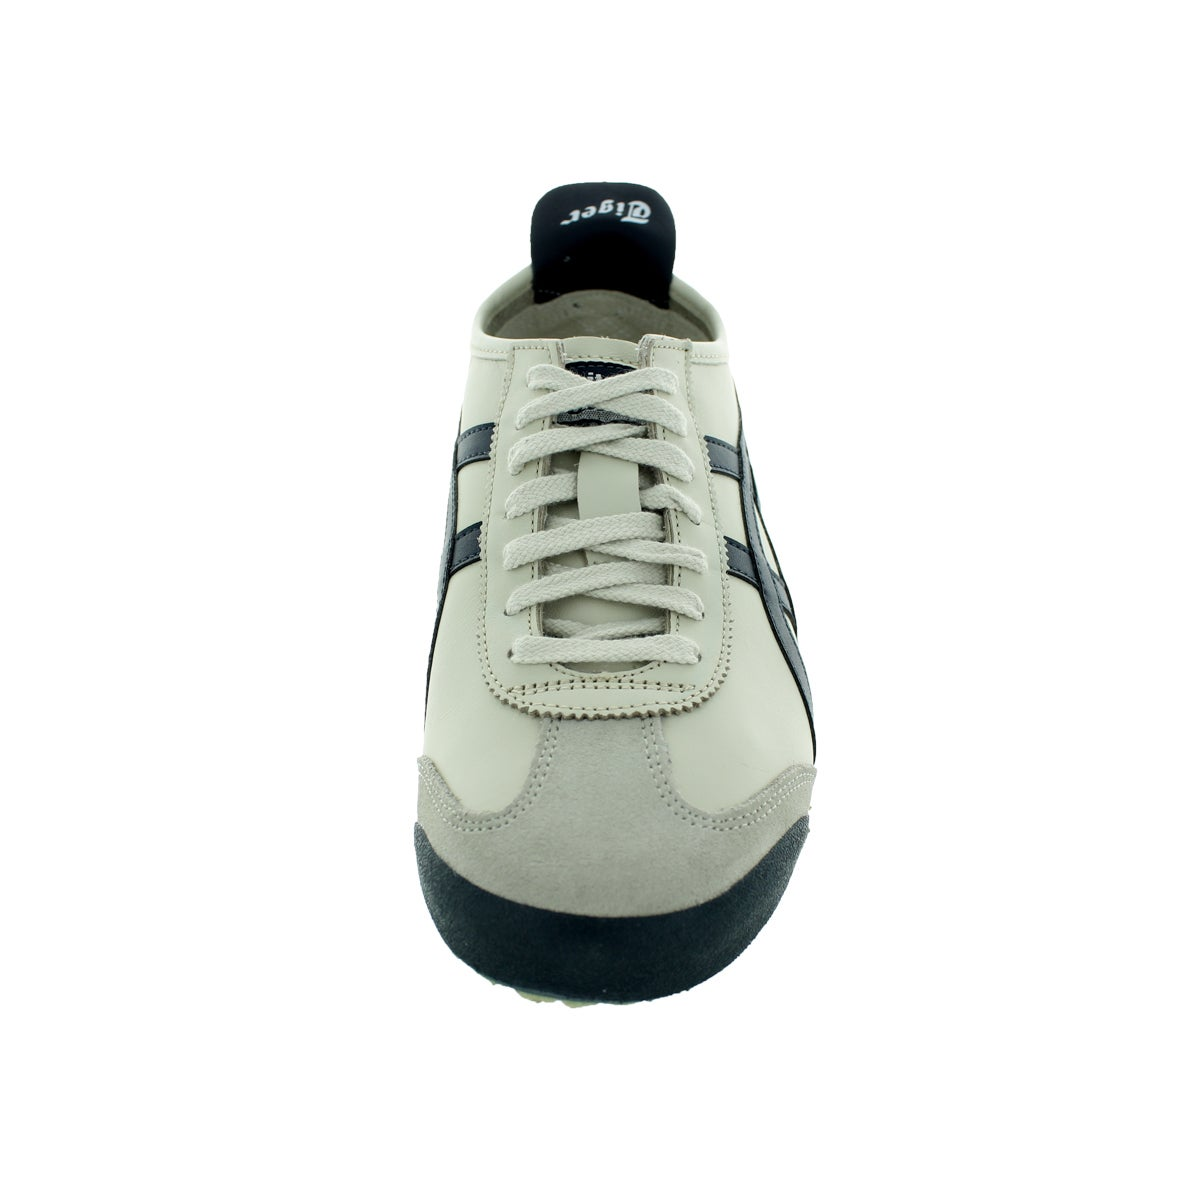 pick up 19aa5 60061 Onitsuka Tiger Unisex Mexico 66 Birch/India Ink/Latte Casual Shoe